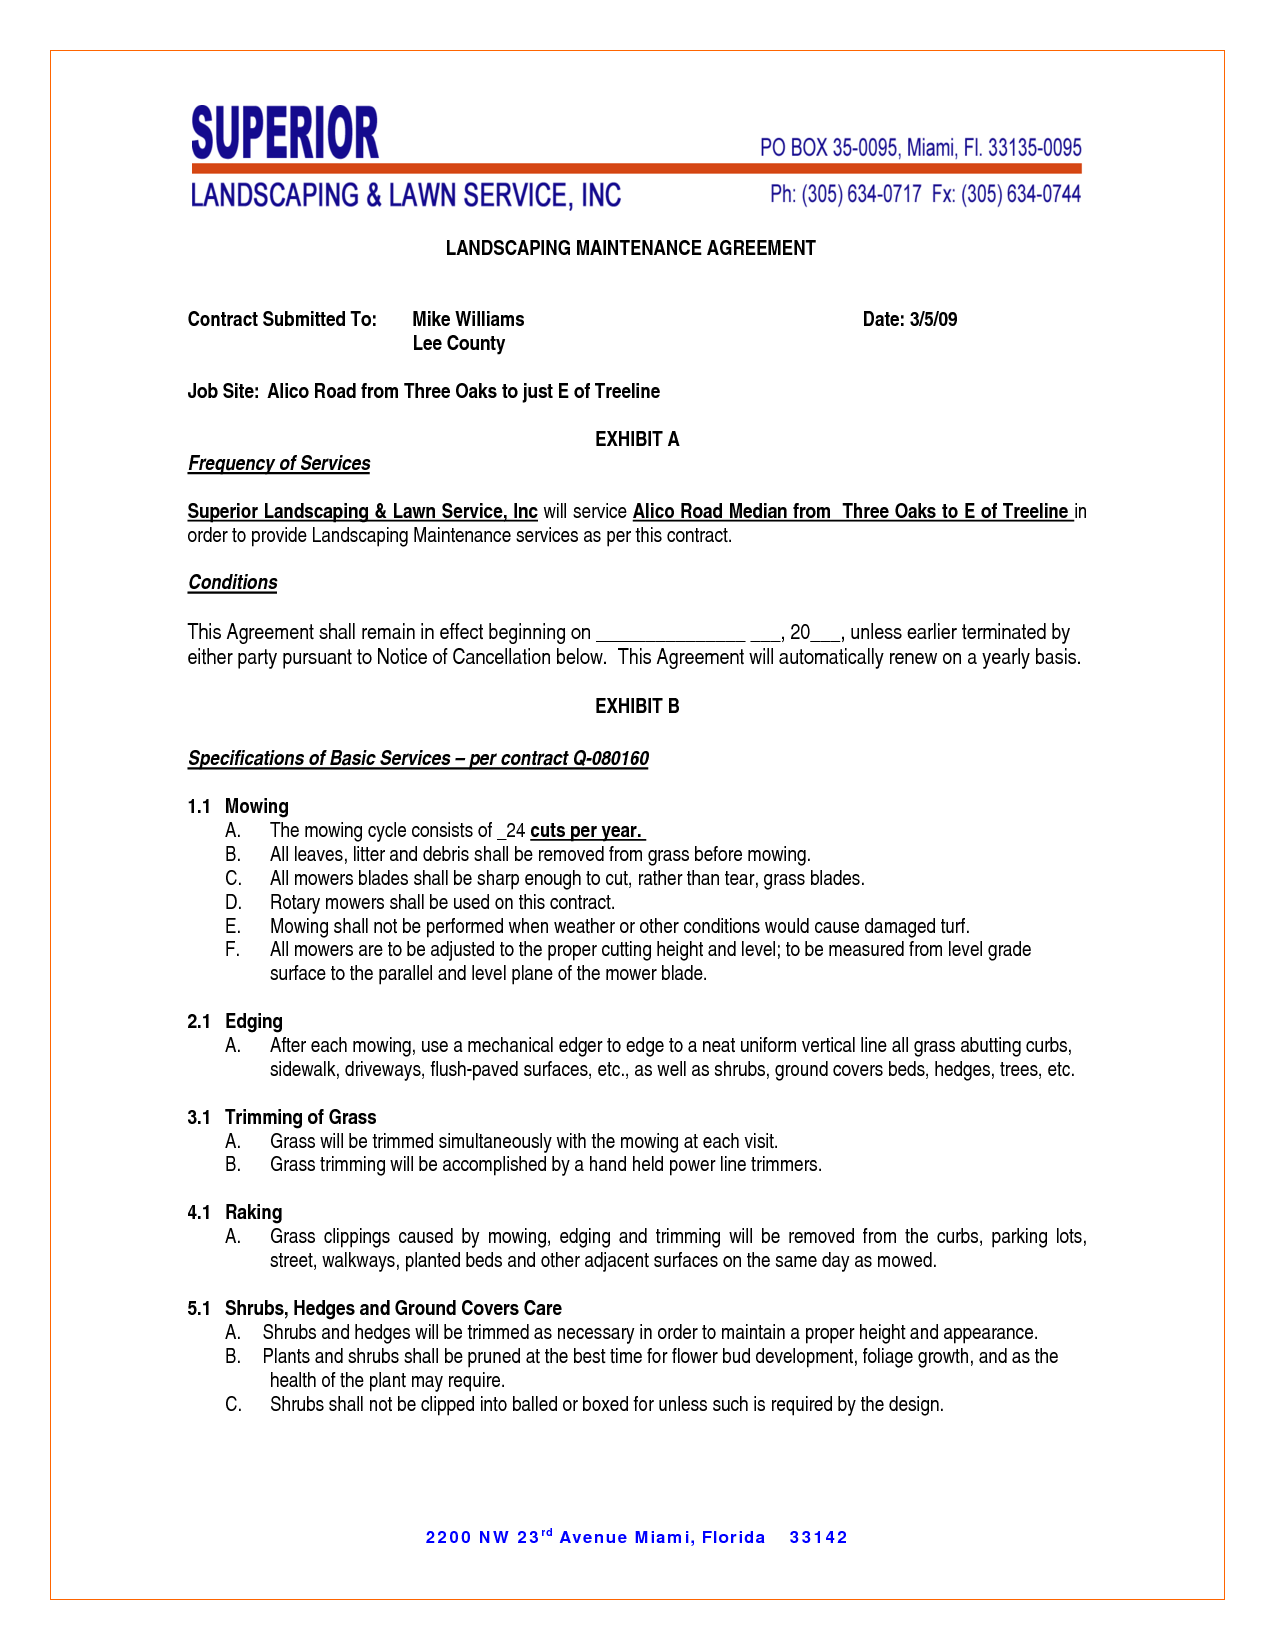 maintenance contract agreement sample